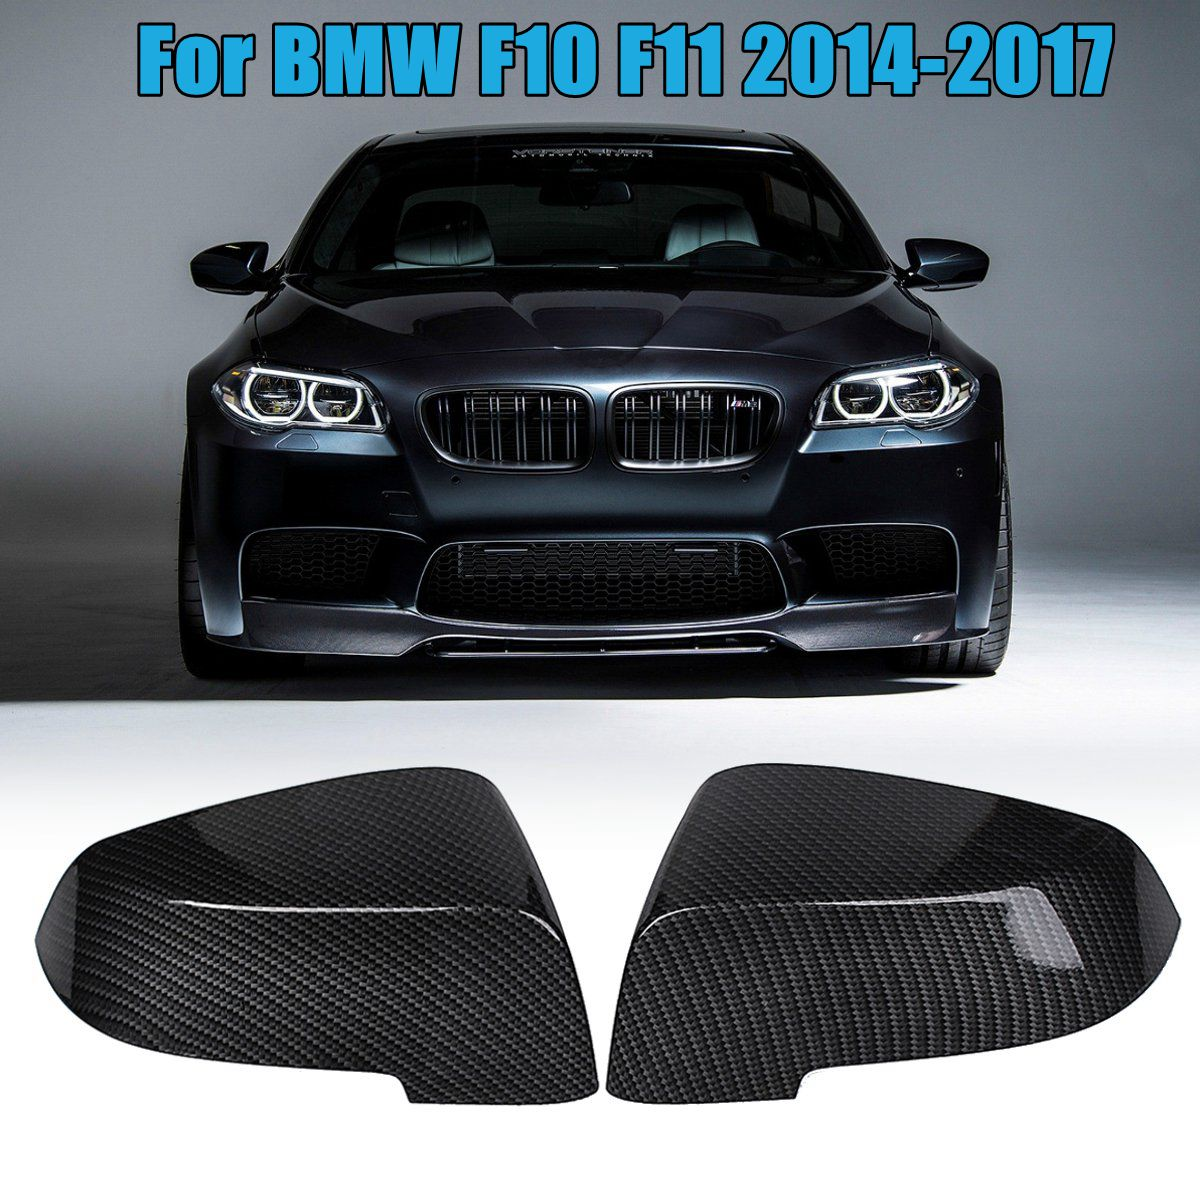 1 Pair Carbon Fiber Side Wing Replacement Rearview Mirror Cover Cap for <font><b>BMW</b></font> F10 <font><b>F11</b></font> 2014 <font><b>2015</b></font> 2016 2017 image